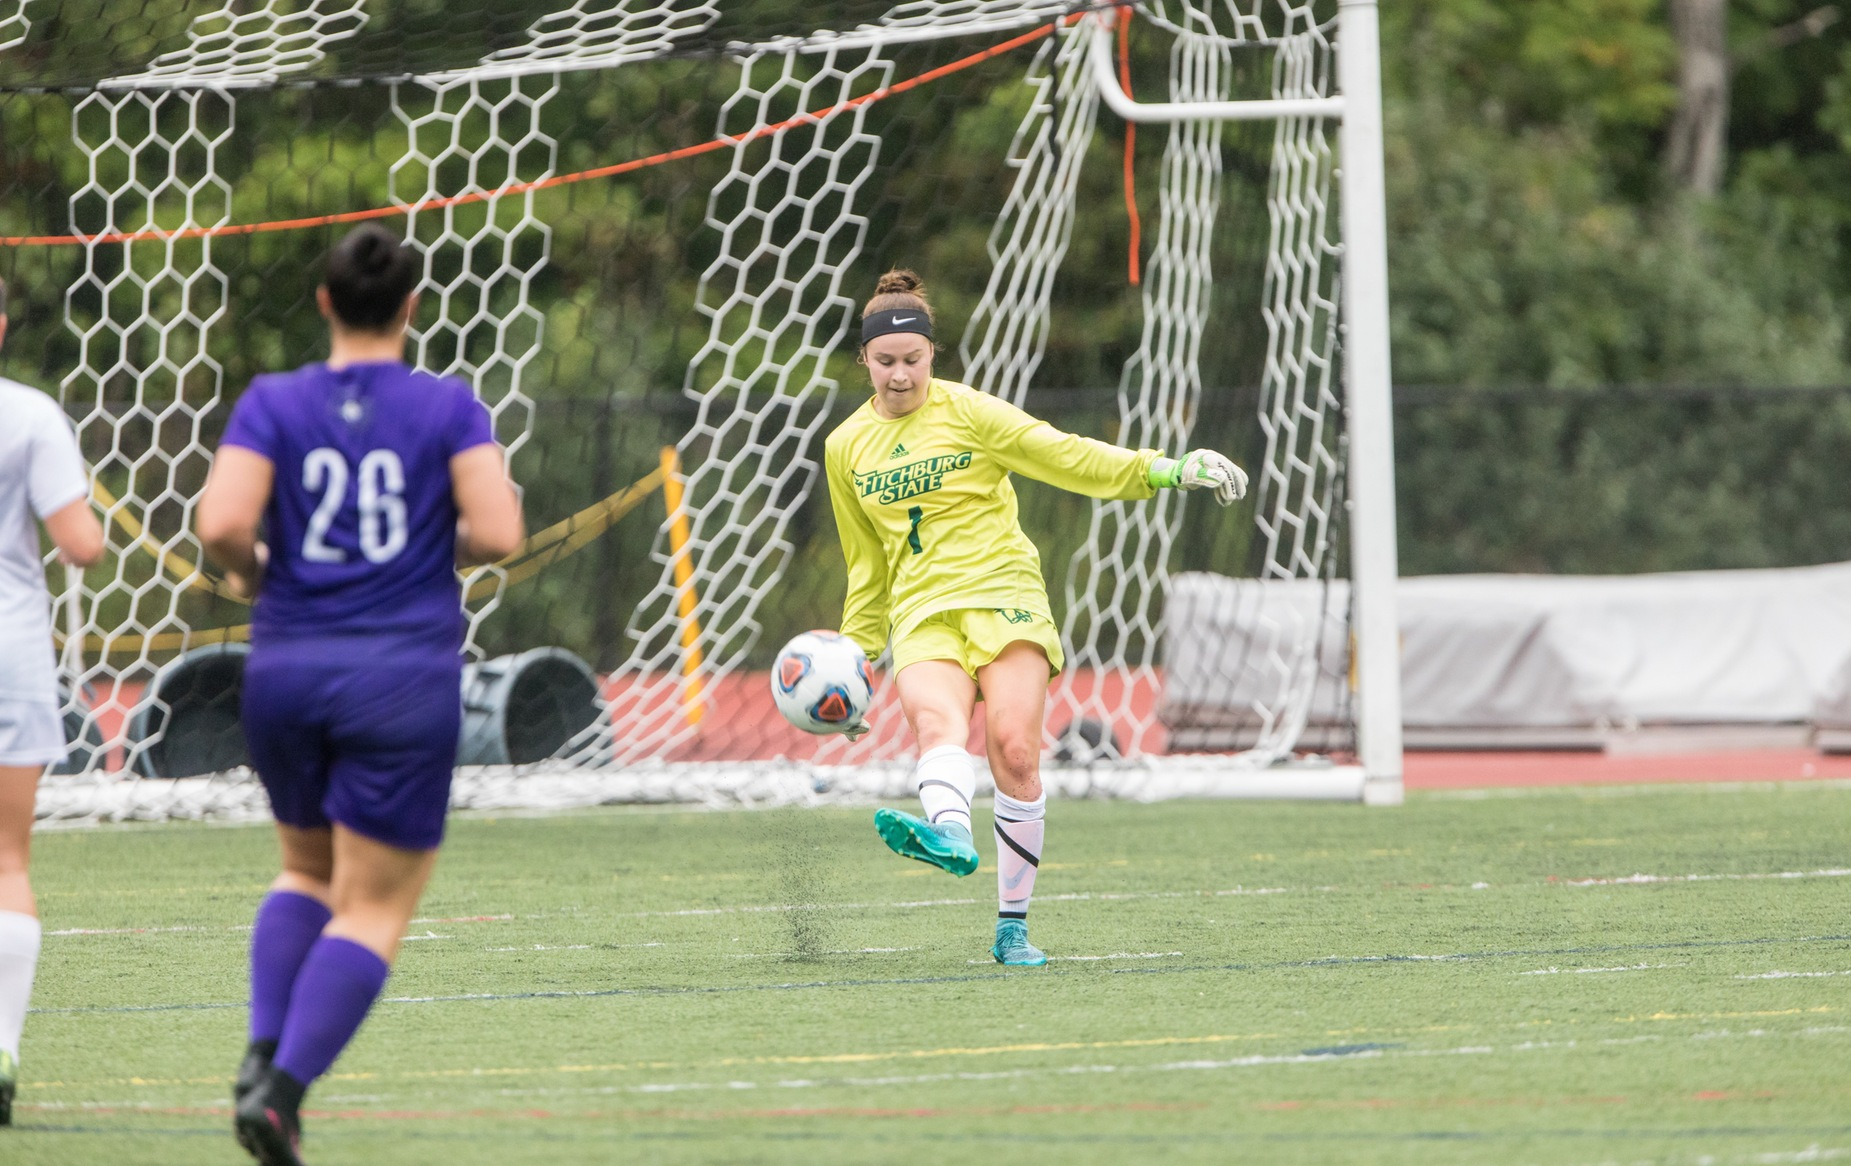 Falcons Blanked By Cougars, 3-0